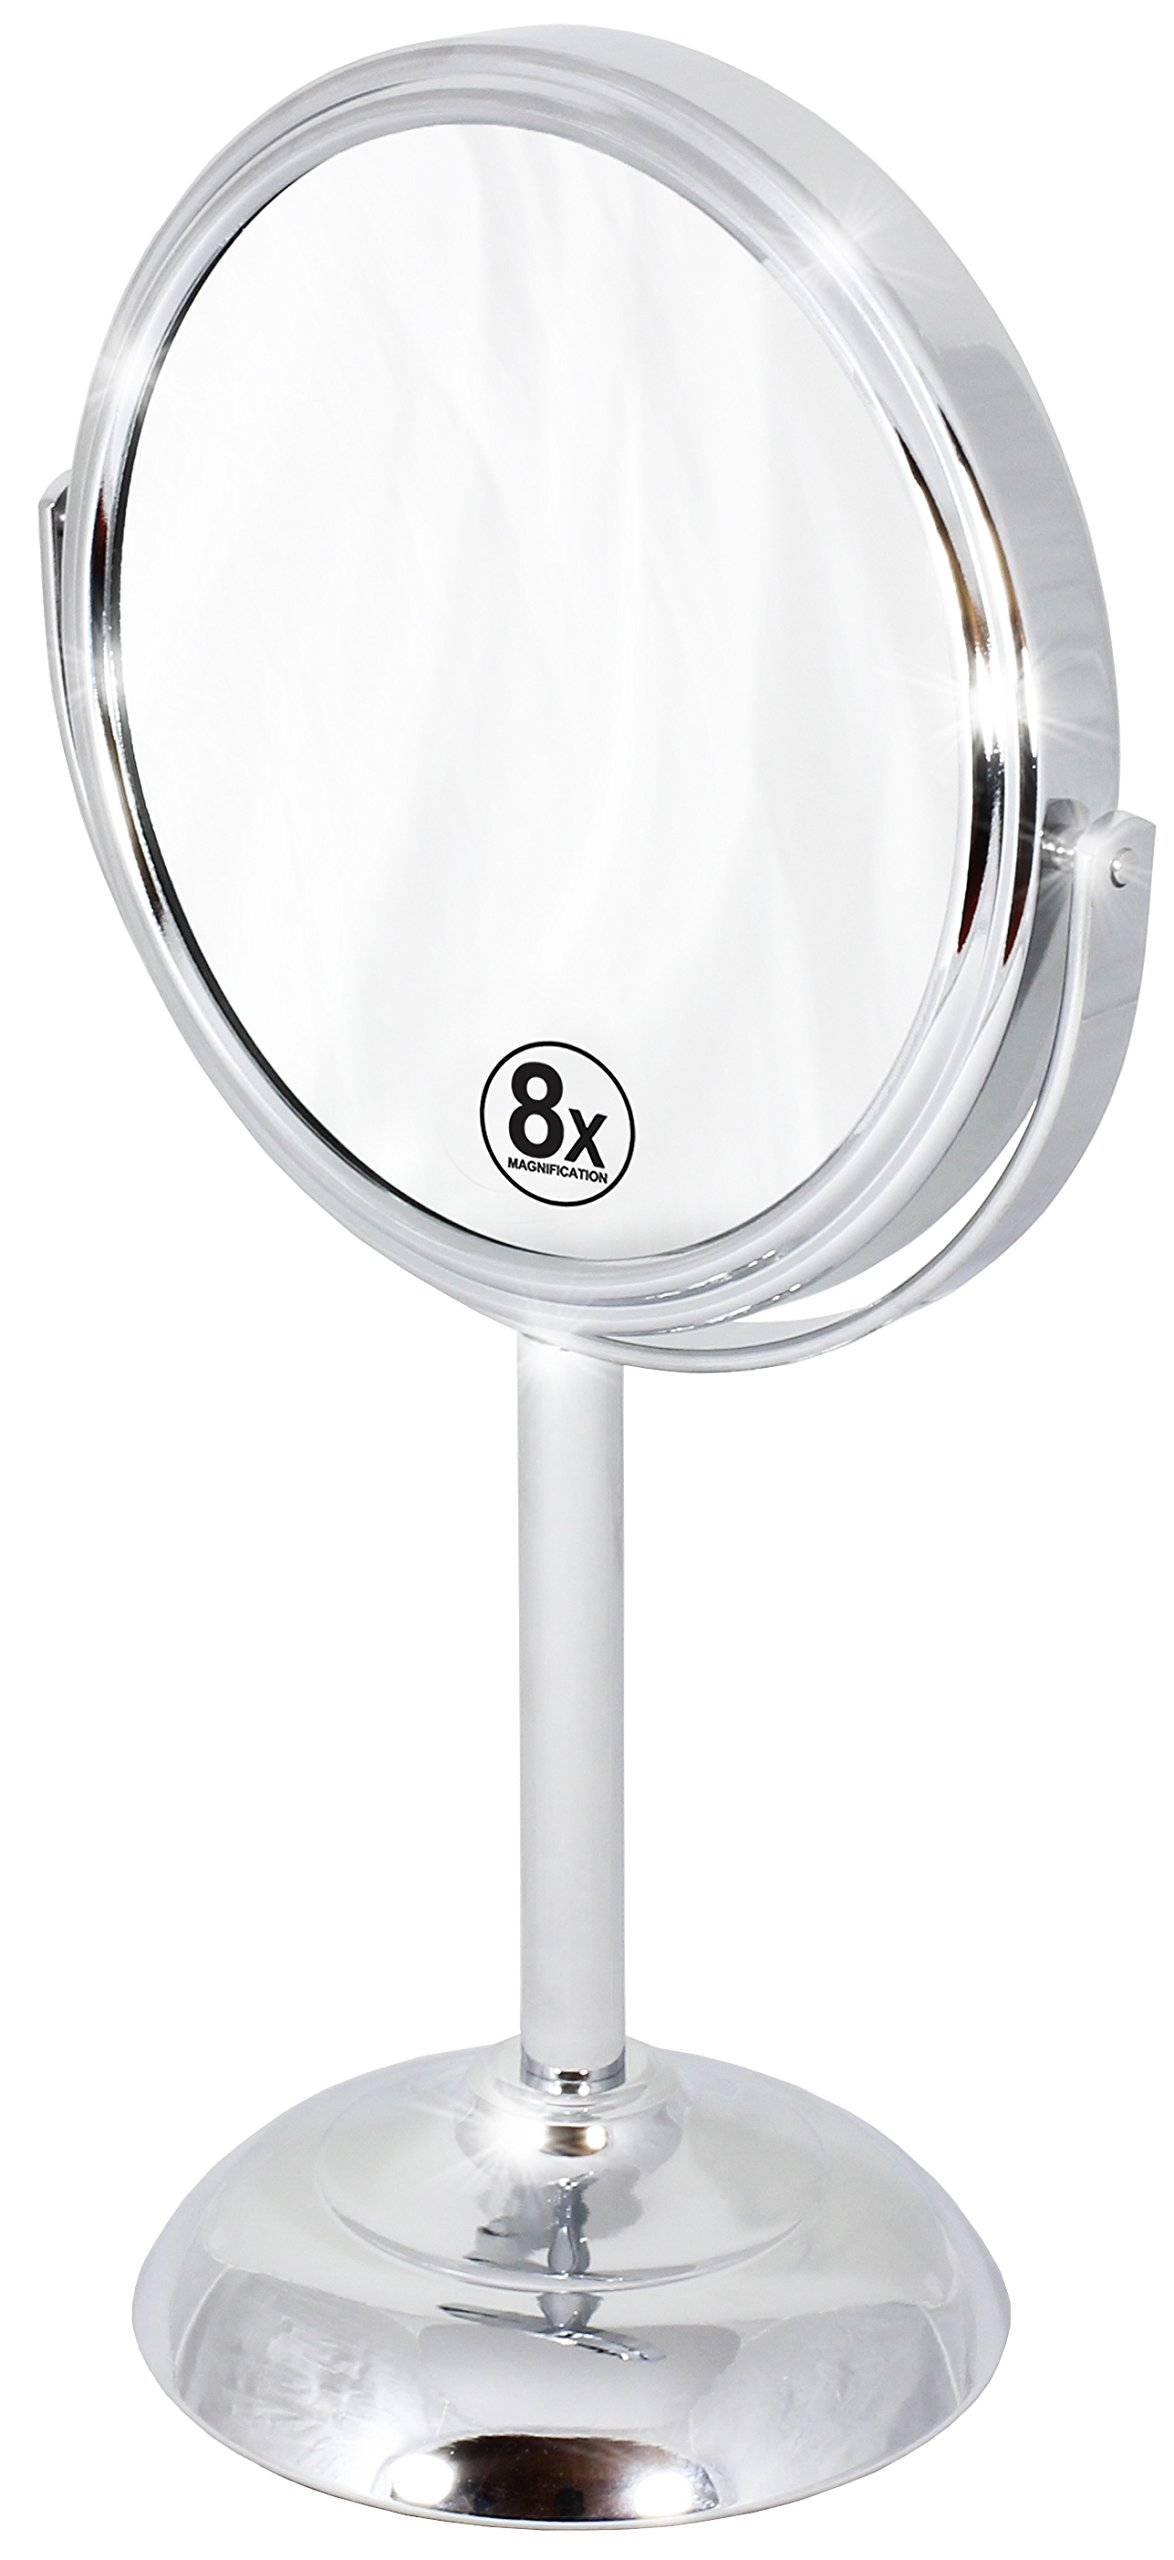 Decobros 6-inch Tabletop Two-Sided Swivel Vanity Mirror with 8x Magnification, 11-inch Height, Chrome Finish by DECOBROS